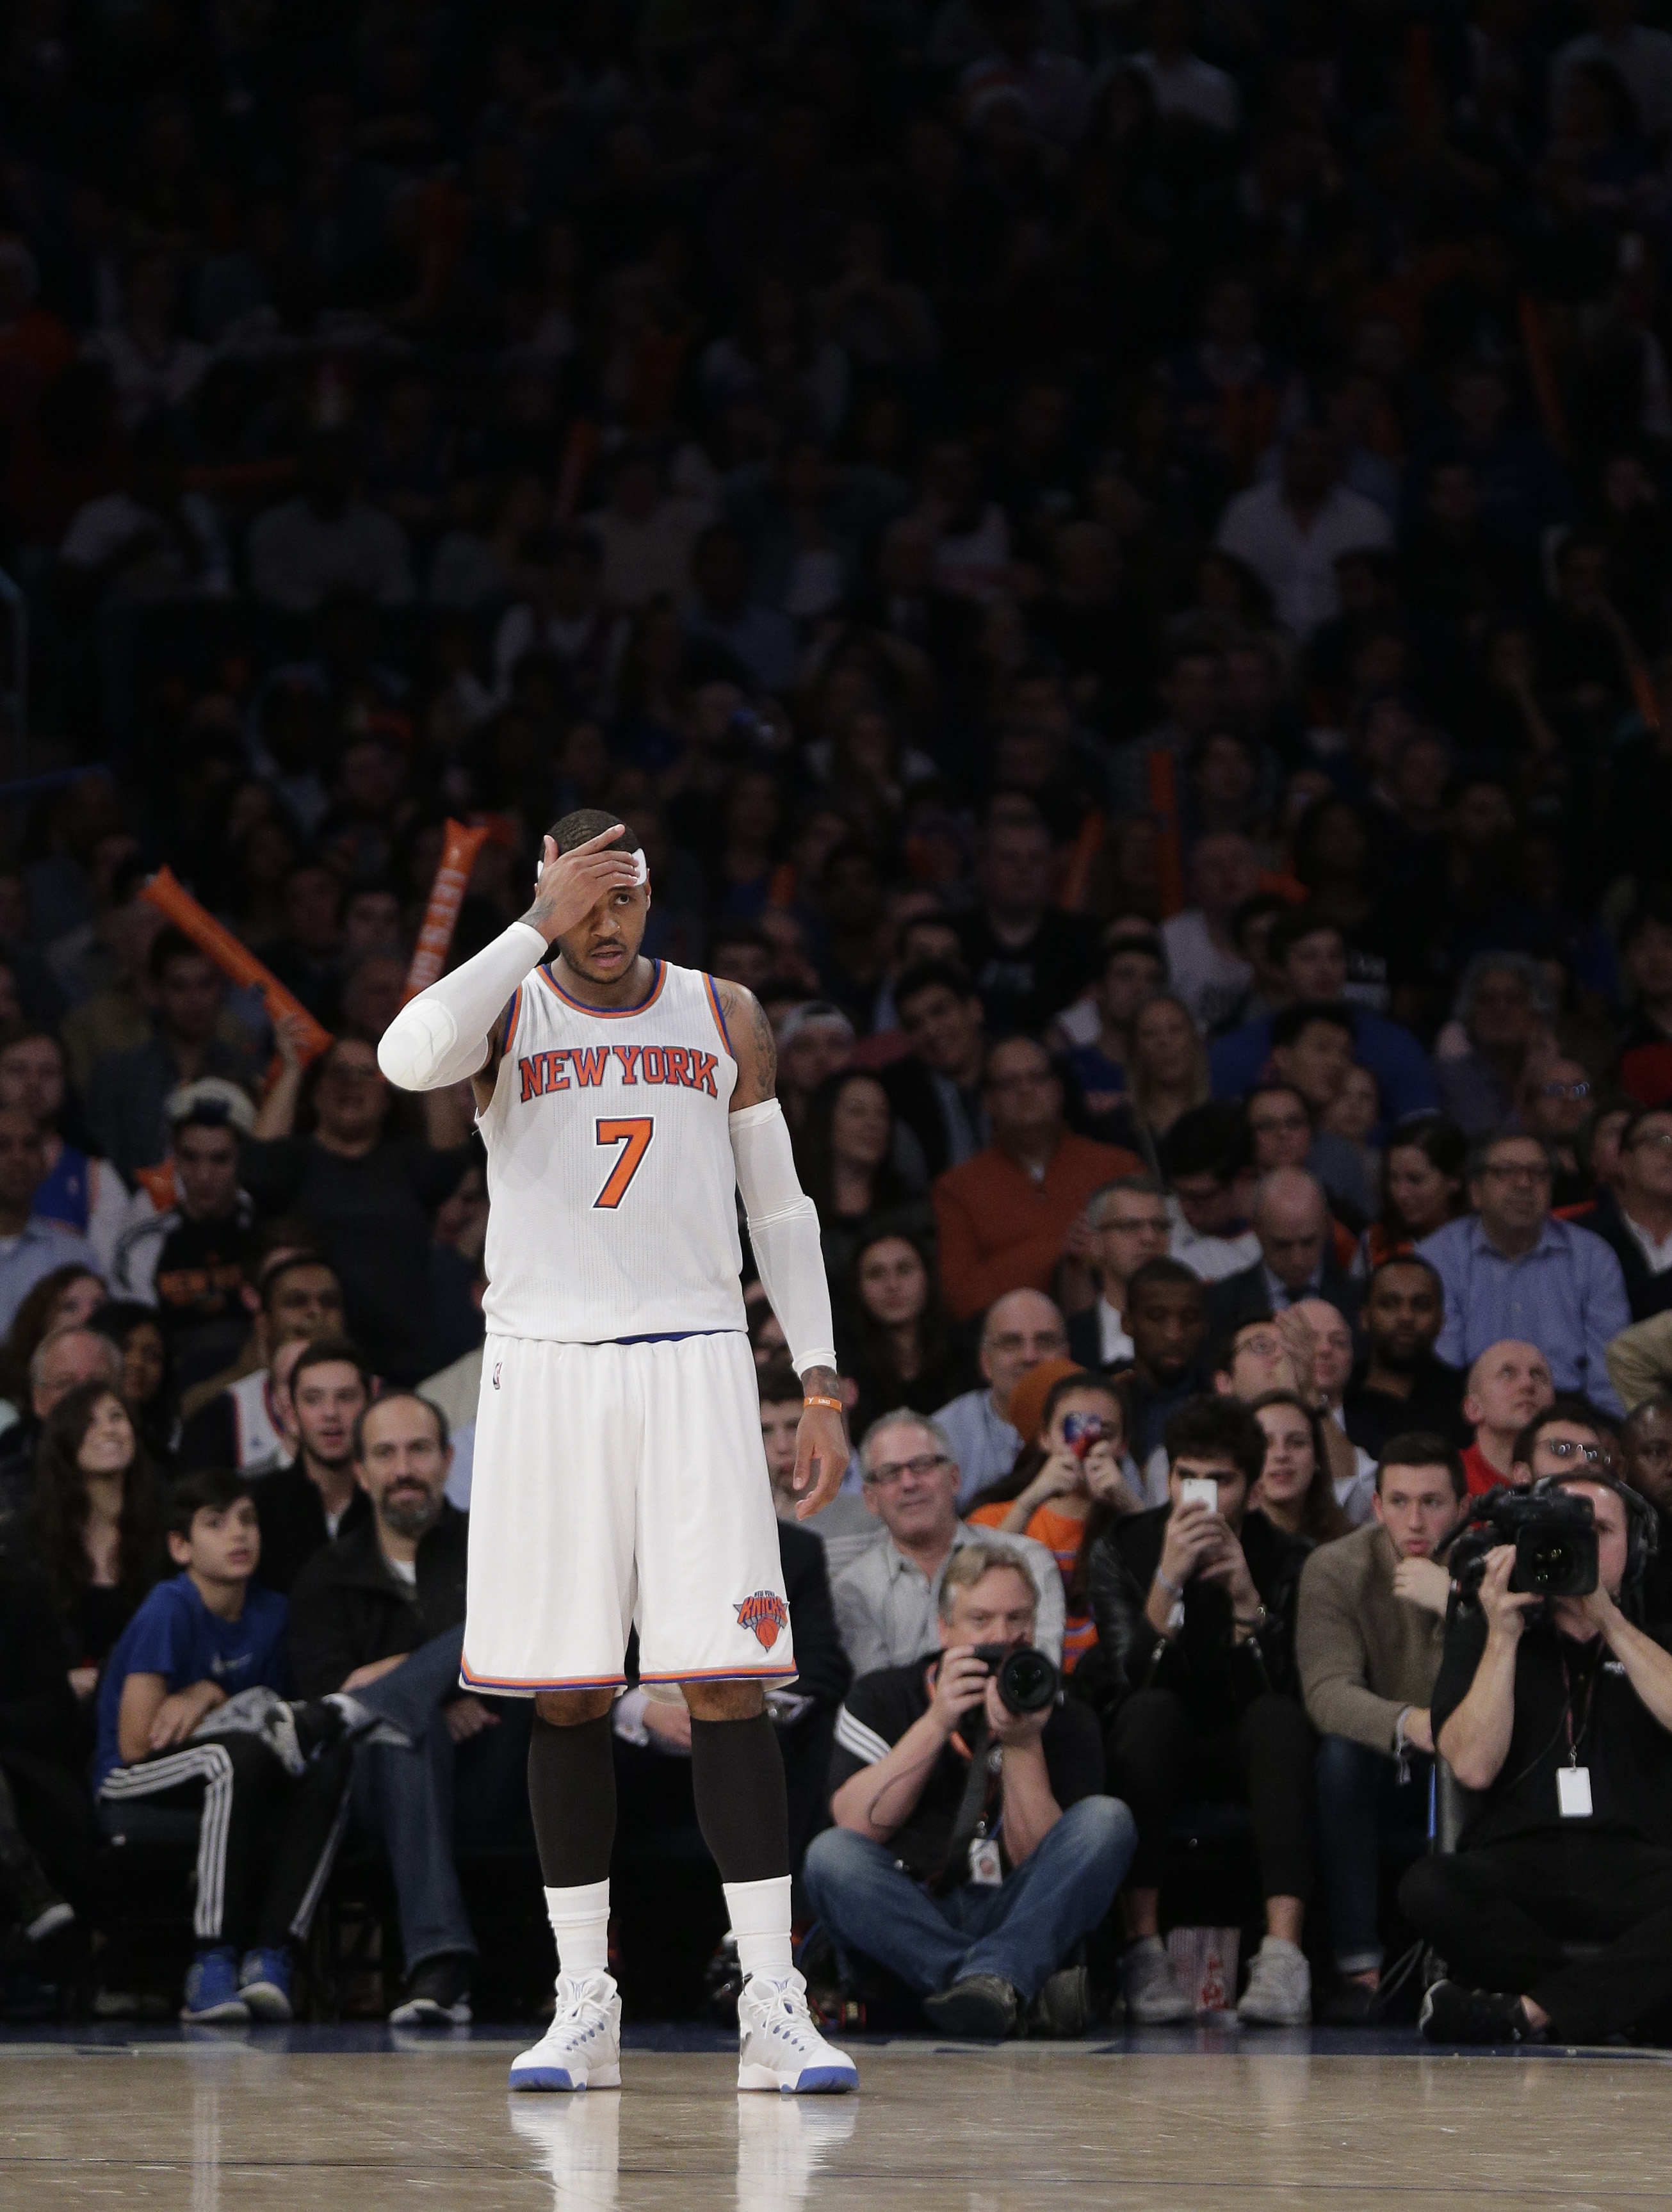 New York Knicks forward Carmelo Anthony (7) adjusts his head band as he gets back on defense during the third quarter of an NBA basketball game against the Orlando Magic, Monday, Dec. 21, 2015, in New York. The Magic won 107-99. (AP Photo/Julie Jacobson)